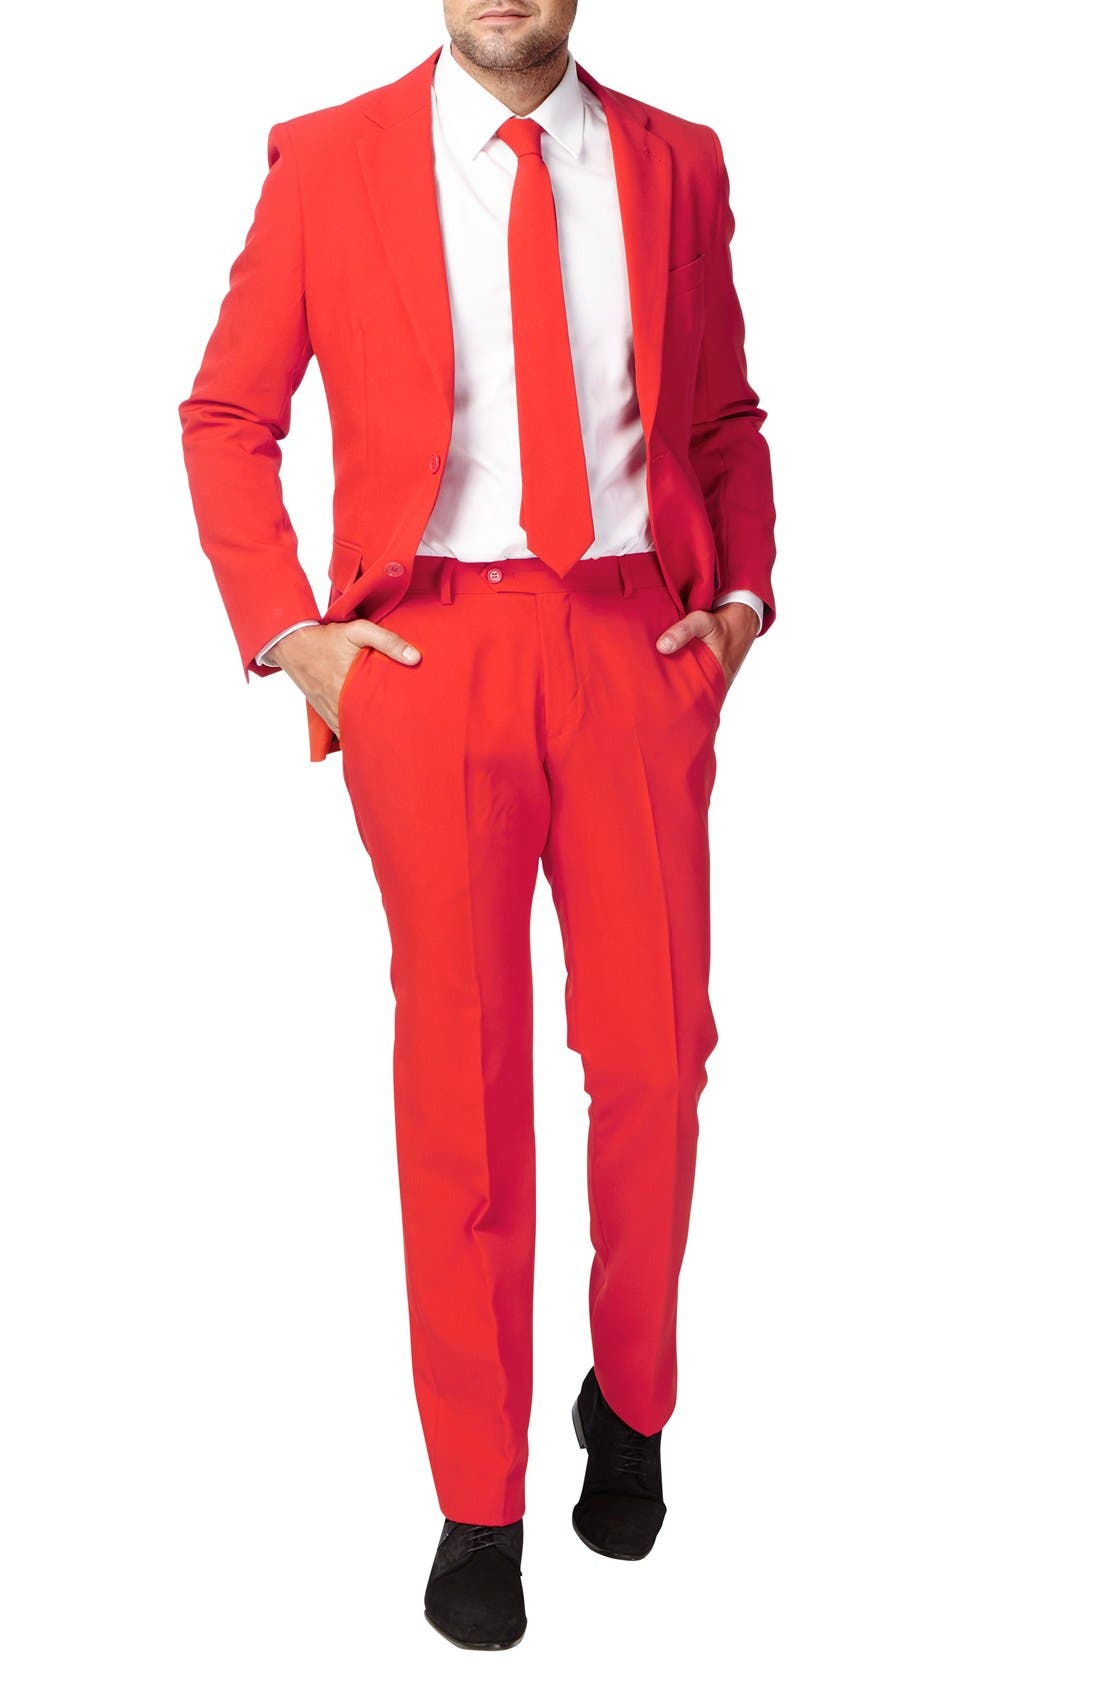 Main Image - OppoSuit 'Red Devil' Trim Fit Two-Piece Suit with Tie